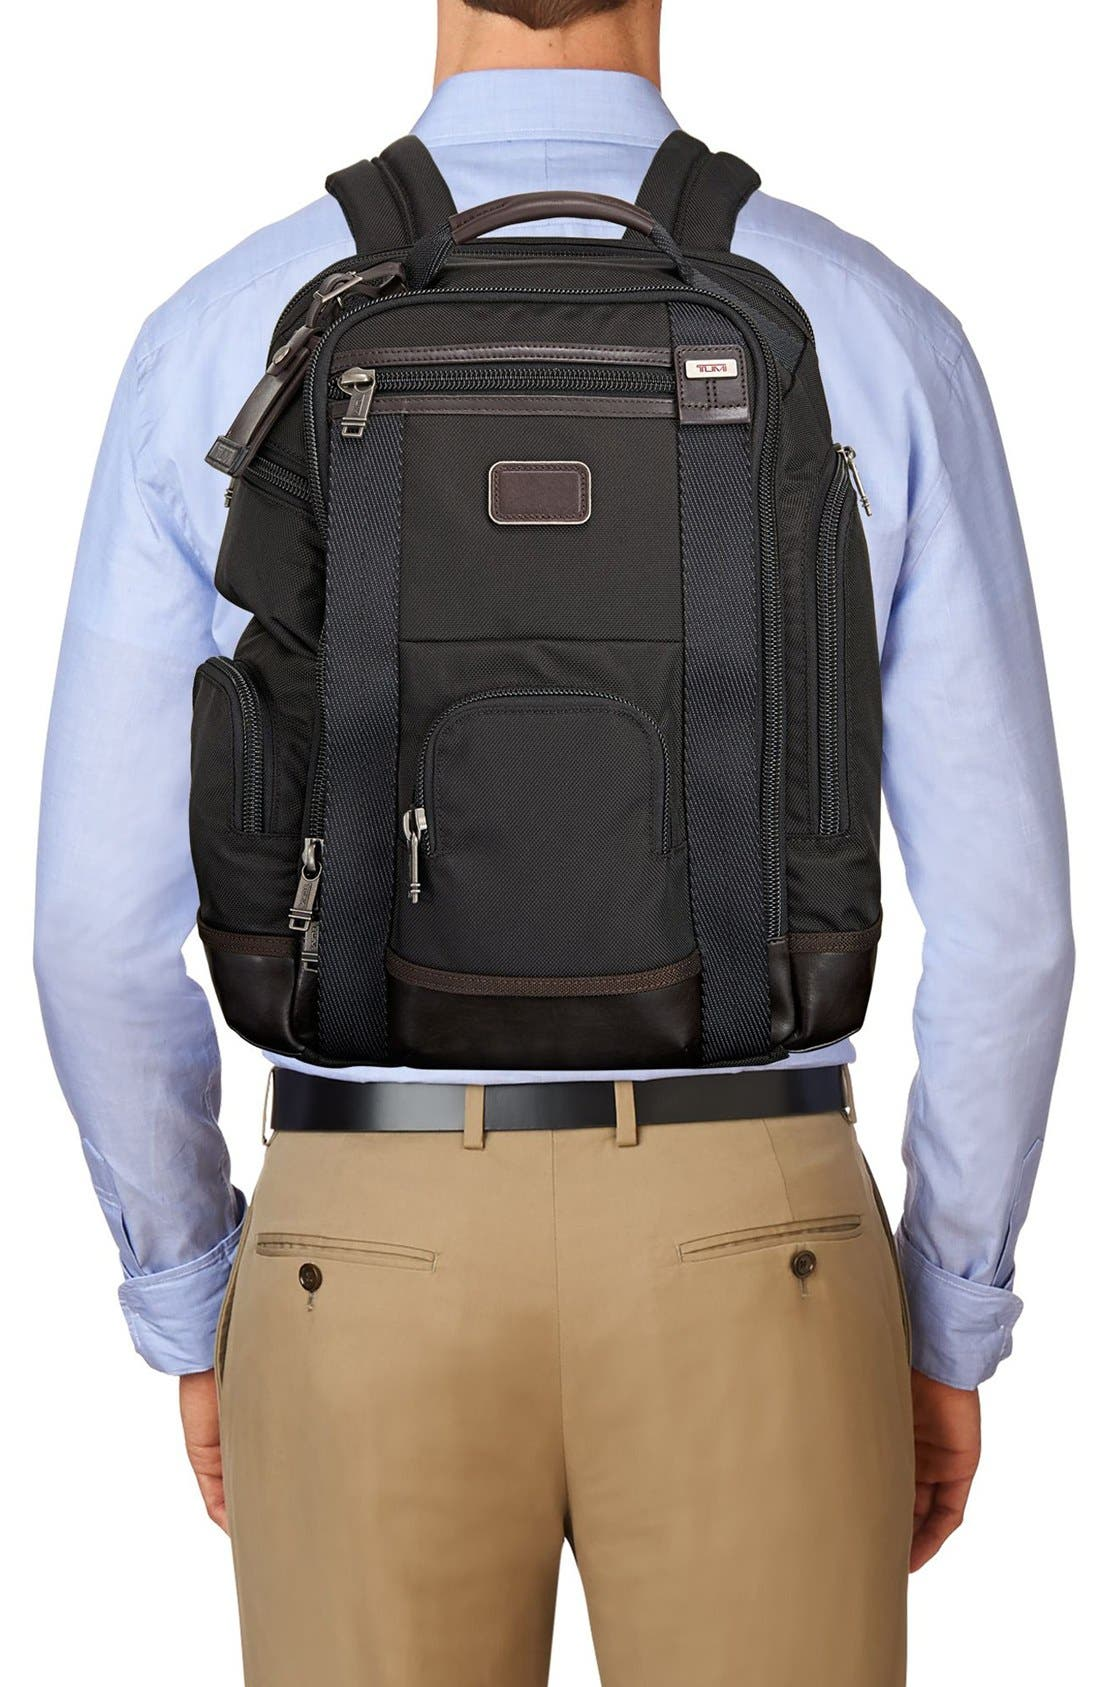 Alpha Bravo Shaw Deluxe Backpack,                             Alternate thumbnail 2, color,                             001